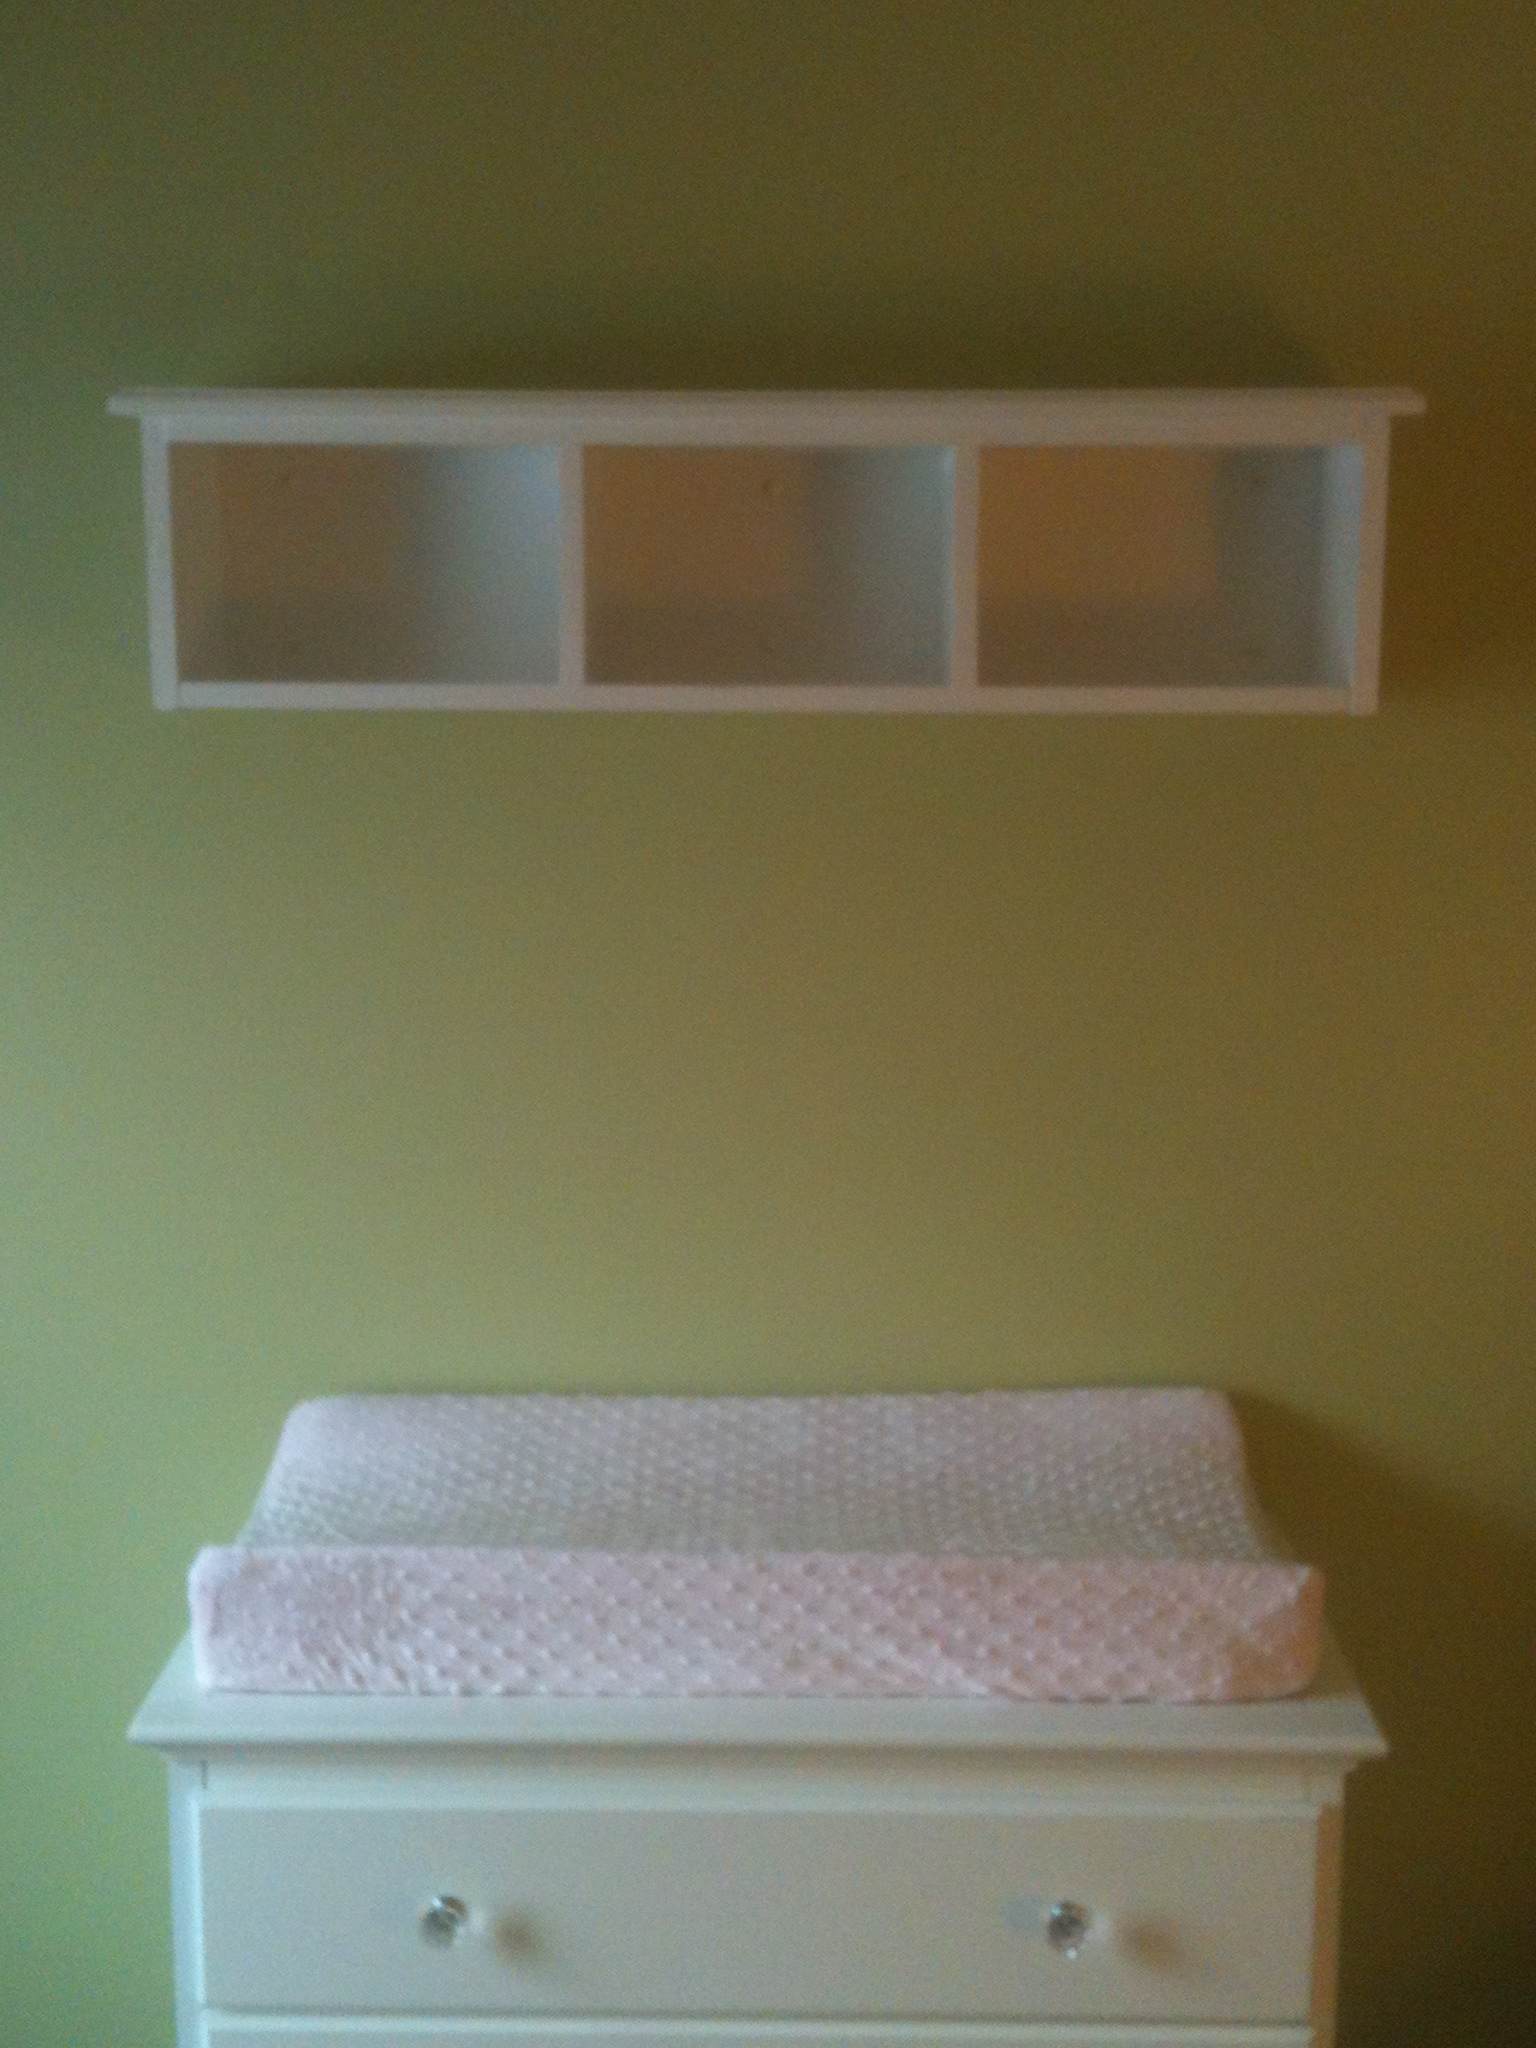 ana white modified entryway shelf diy projects